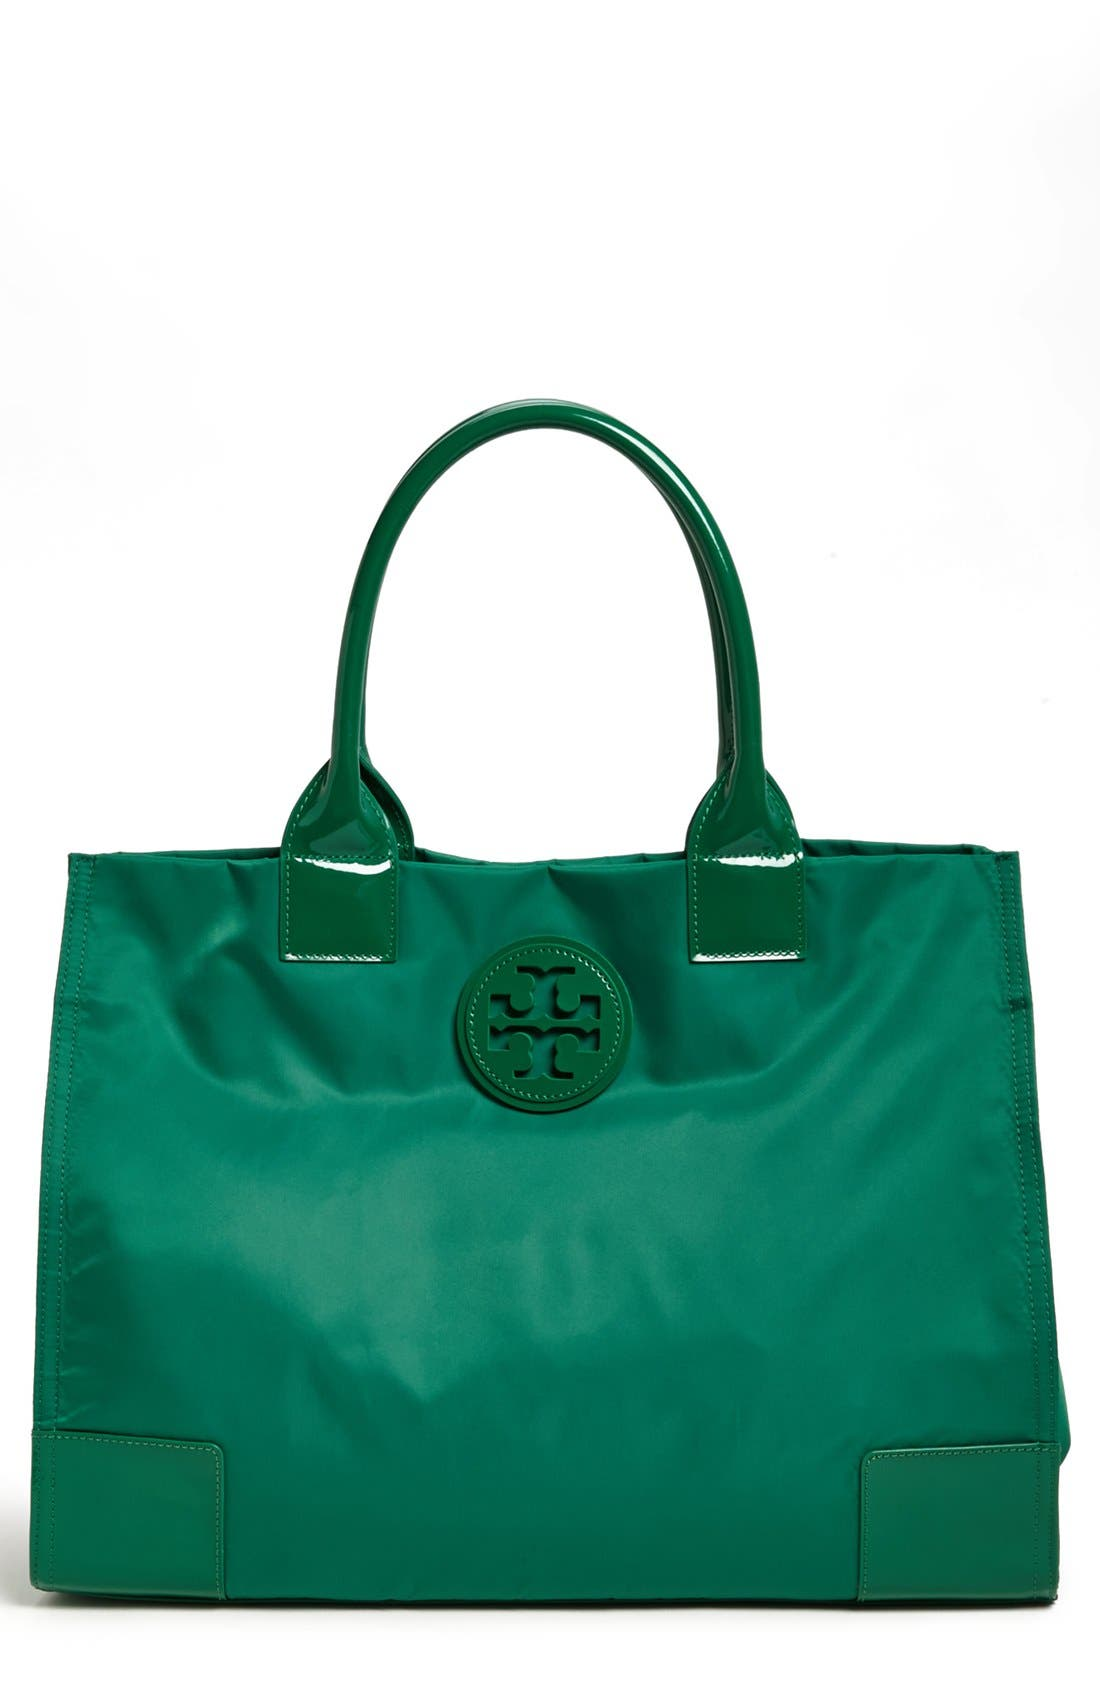 Alternate Image 1 Selected - Tory Burch 'Ella' Nylon Tote, Extra Large